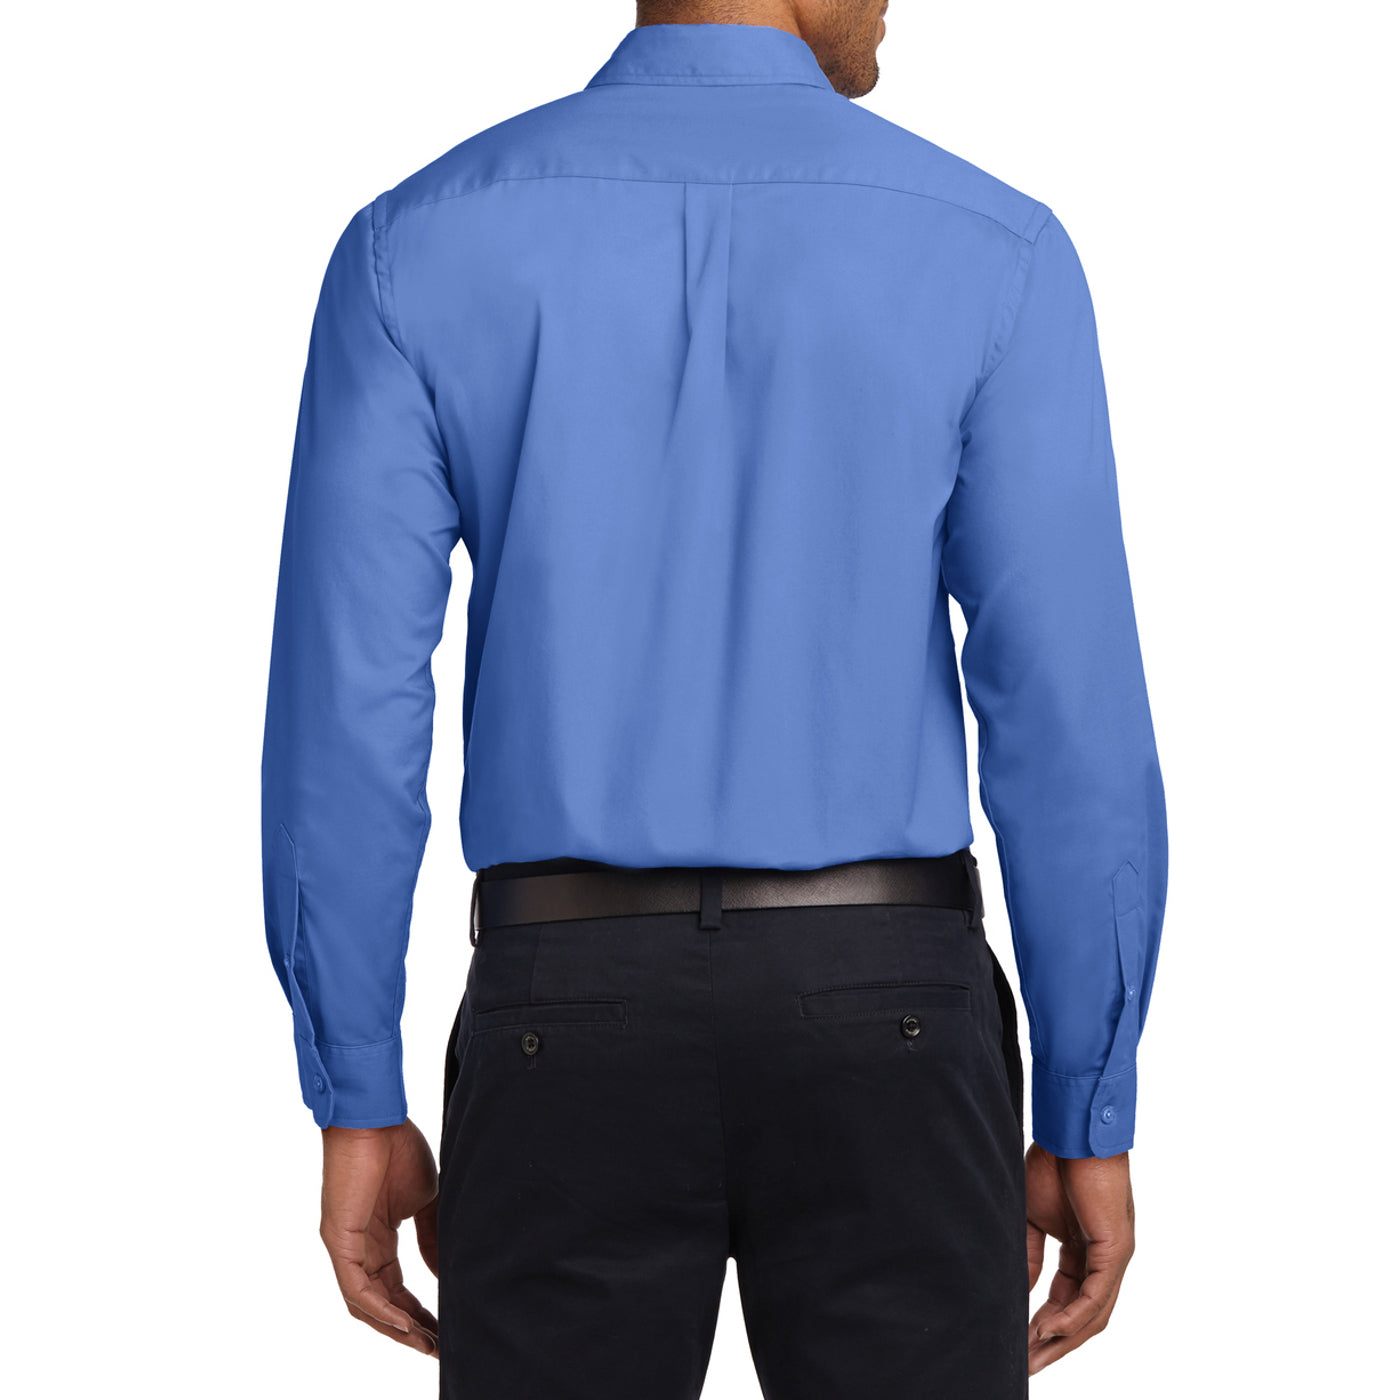 Men's Long Sleeve Easy Care Shirt - Ultramarine Blue - Back